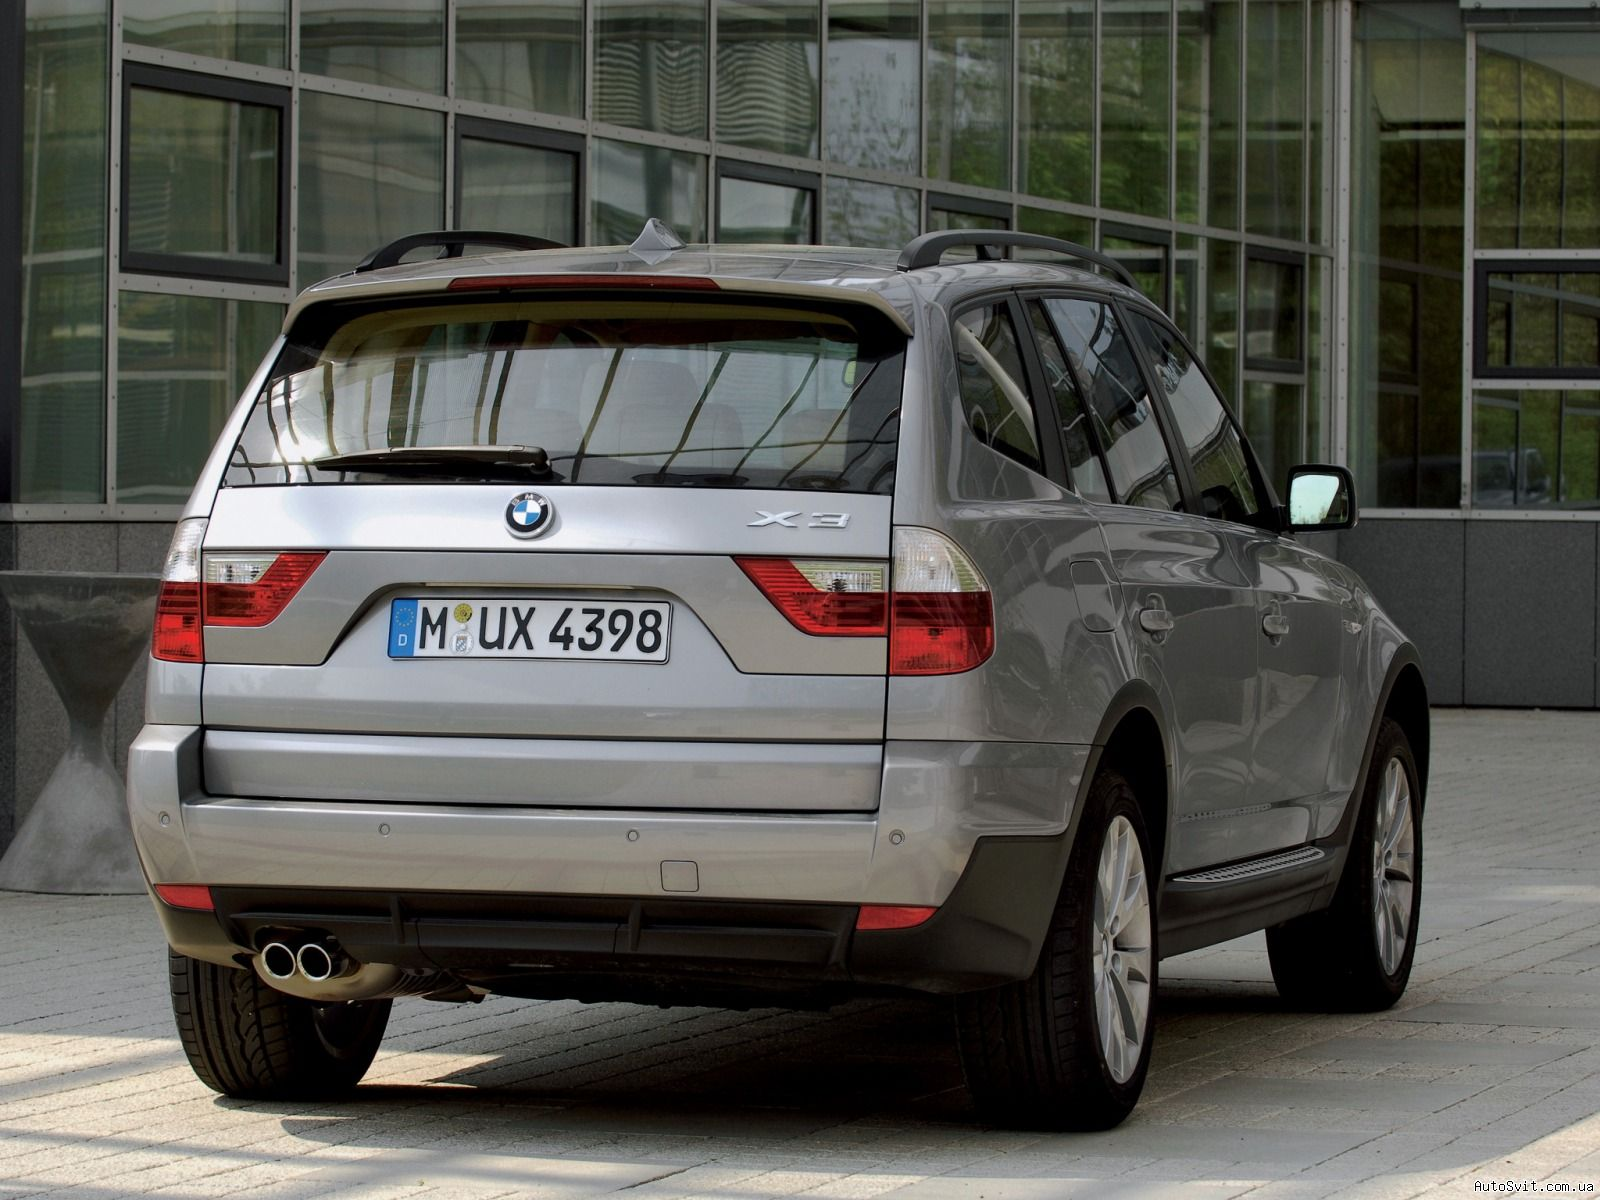 bmw x3 2008 review amazing pictures and images look at the car. Black Bedroom Furniture Sets. Home Design Ideas